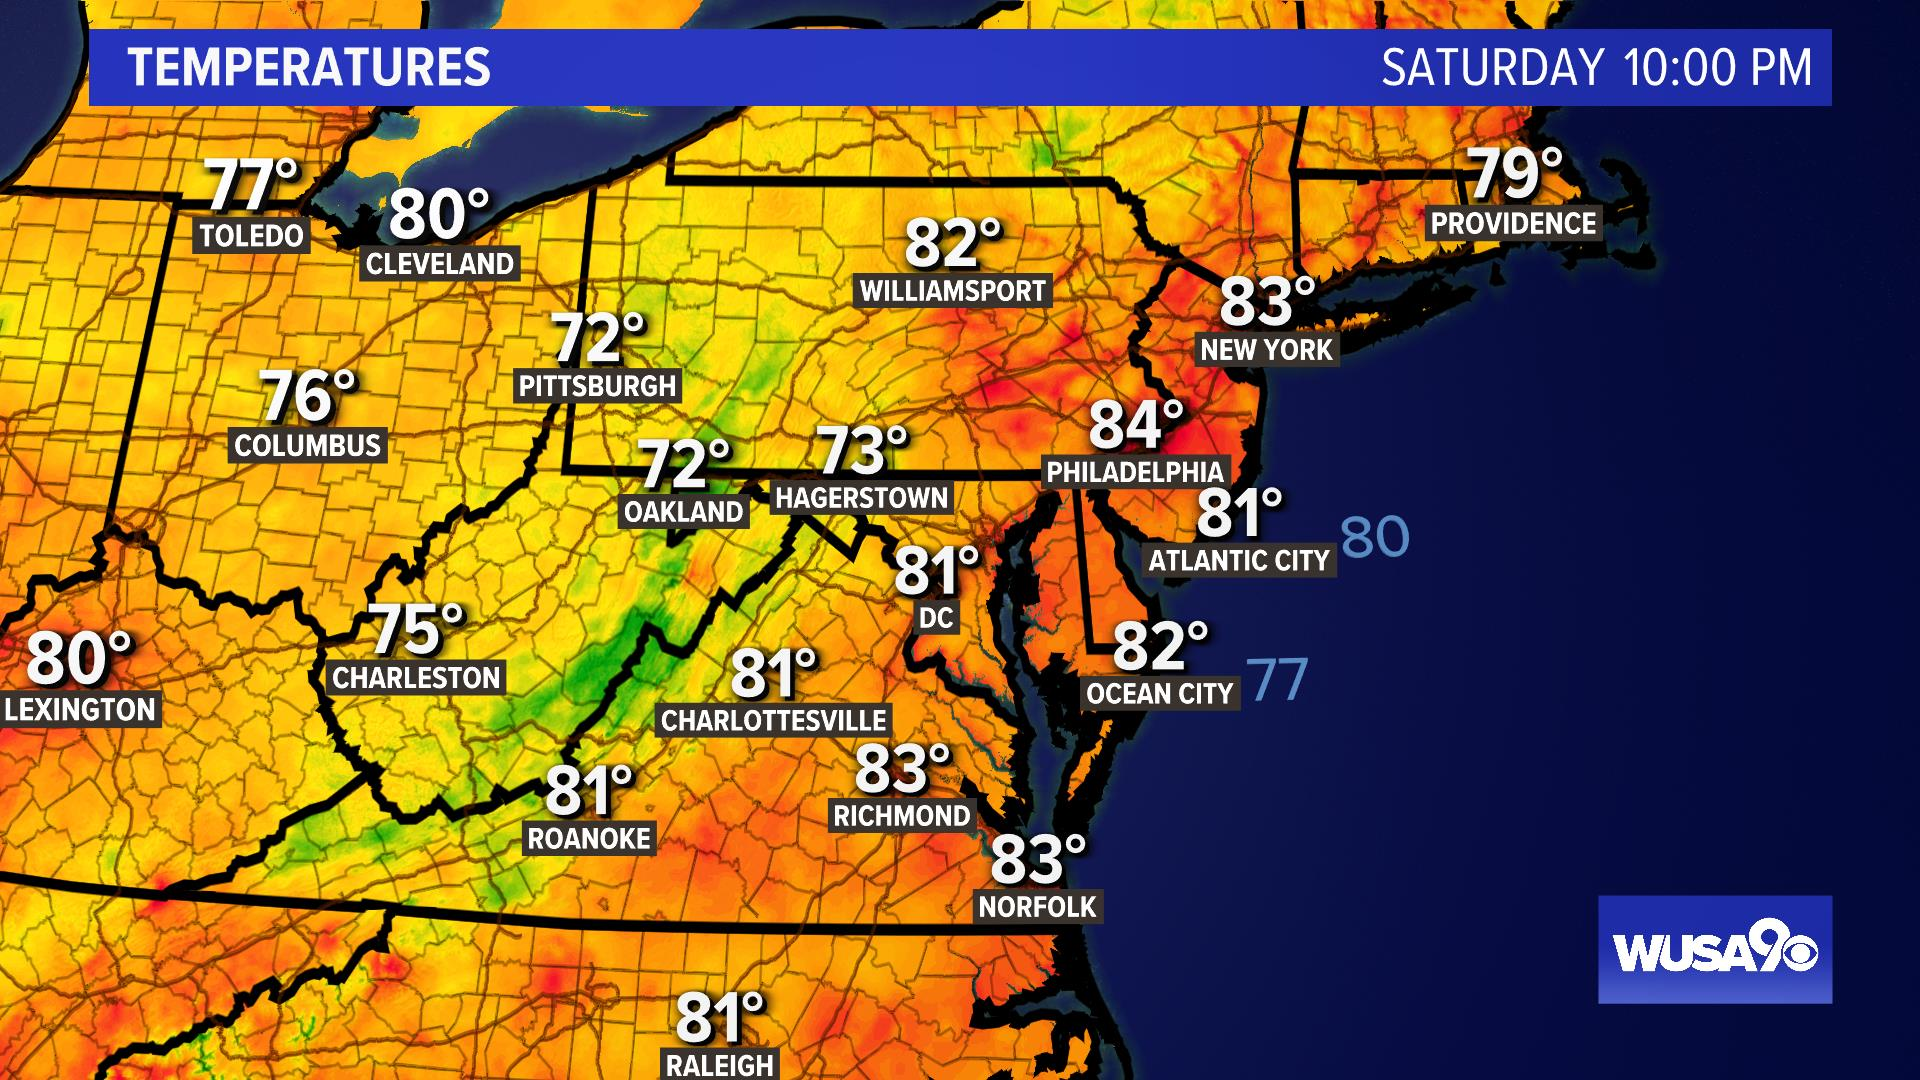 Mid-Atlantic Temps